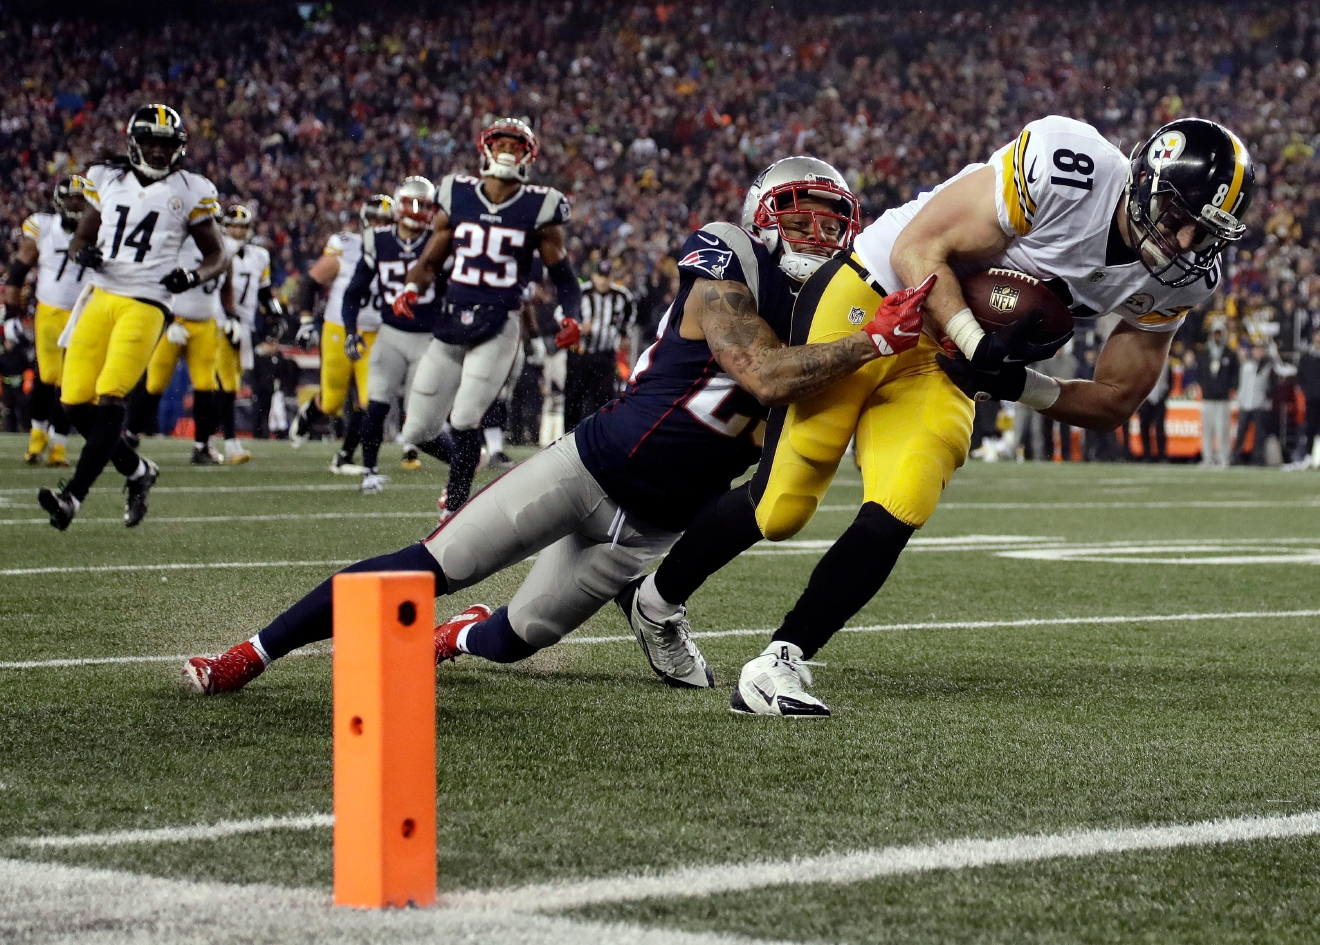 New England Patriots safety Patrick Chung (23) tackles Pittsburgh Steelers tight end Jesse James (81)short of the goal line during the first half of the AFC championship NFL football game, Sunday, Jan. 22, 2017, in Foxborough, Mass. (AP Photo/Matt Slocum)